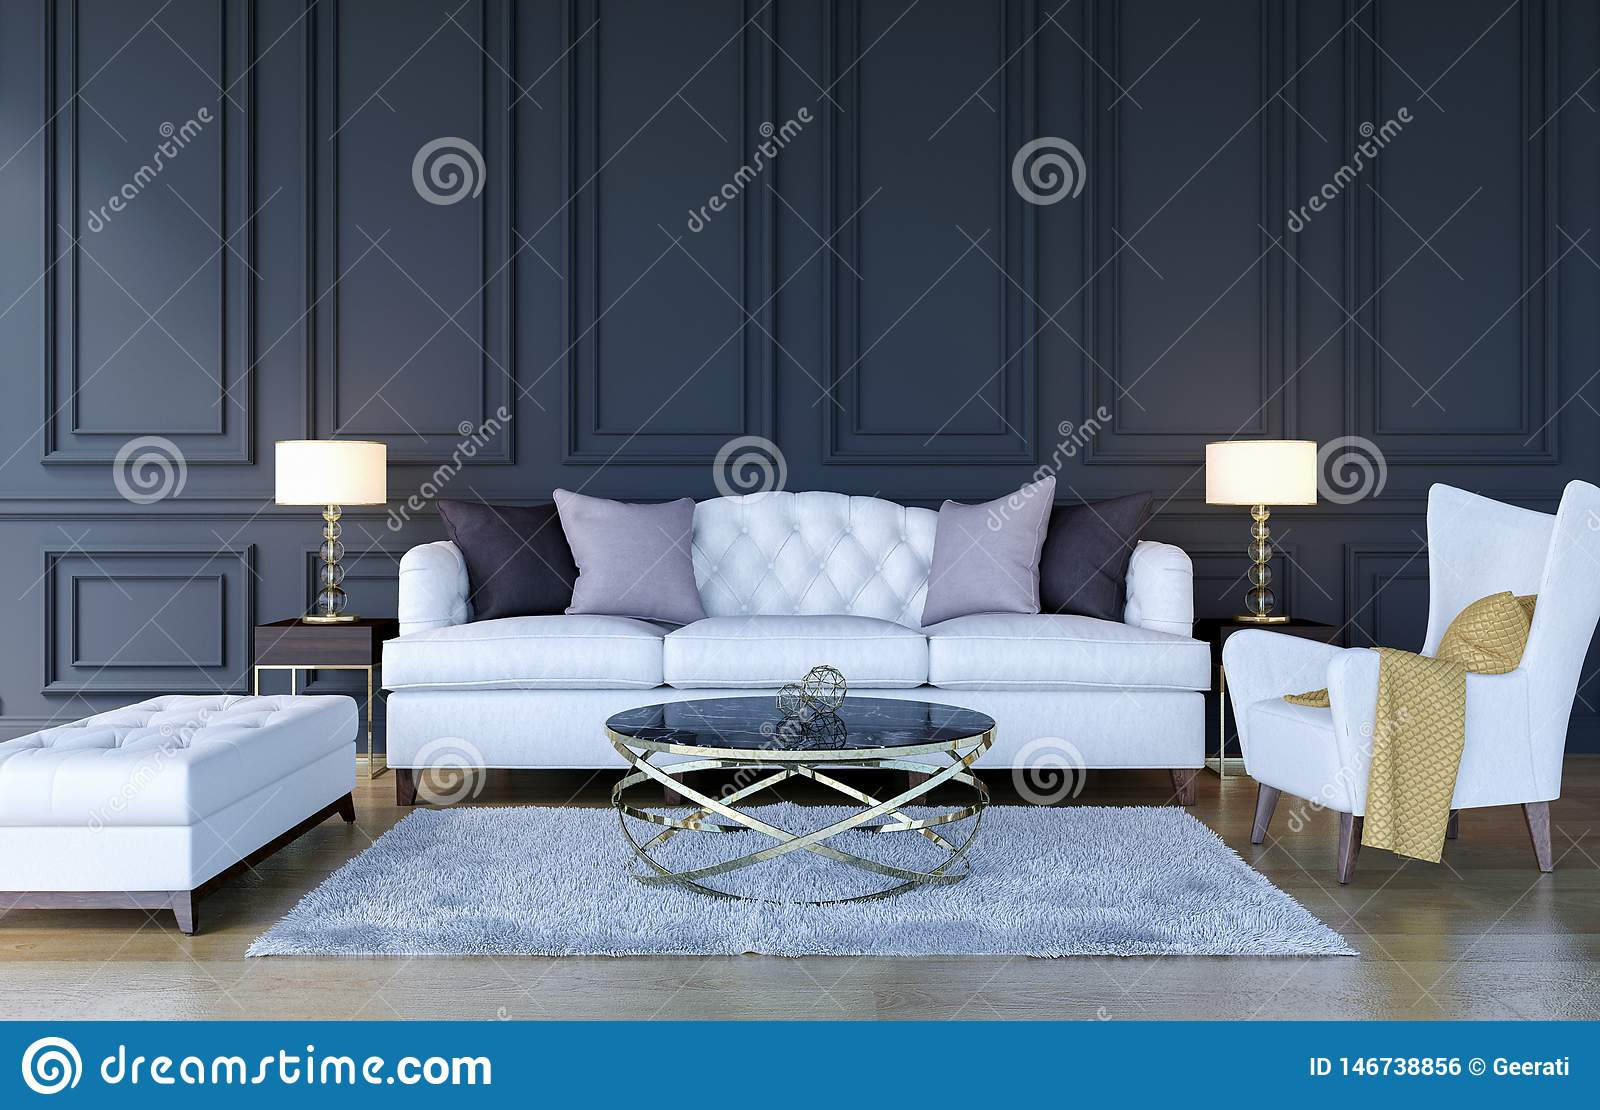 139 526 Luxury Living Room Photos Free Royalty Free Stock Photos From Dreamstime